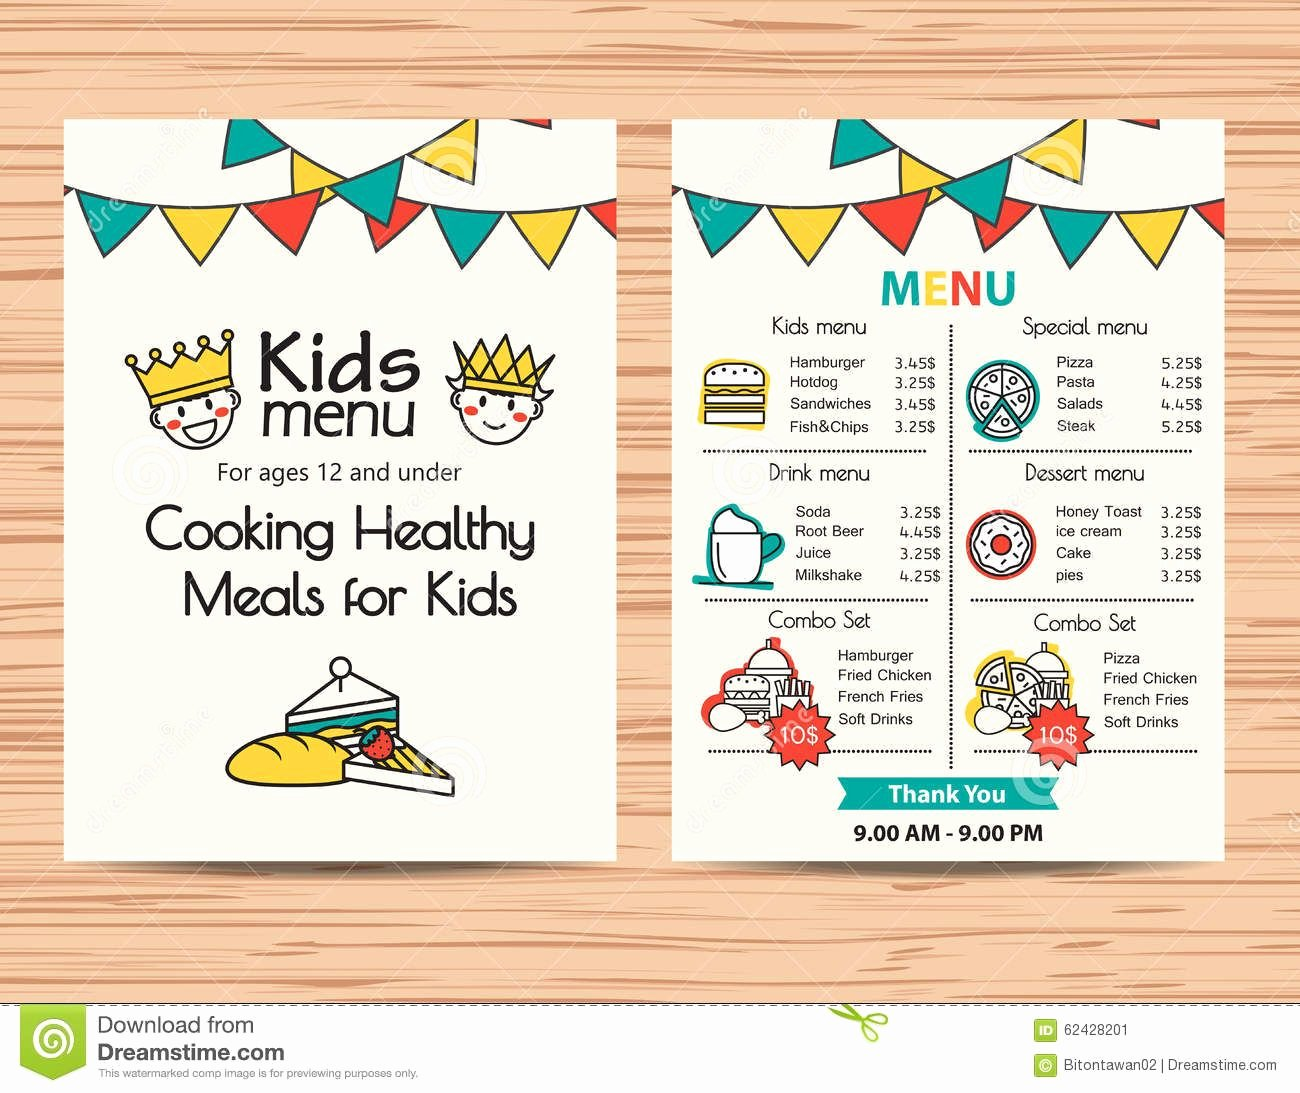 Free Kids Menu Template New Kids Meal Menu Vector Template Restaurant Menu Design